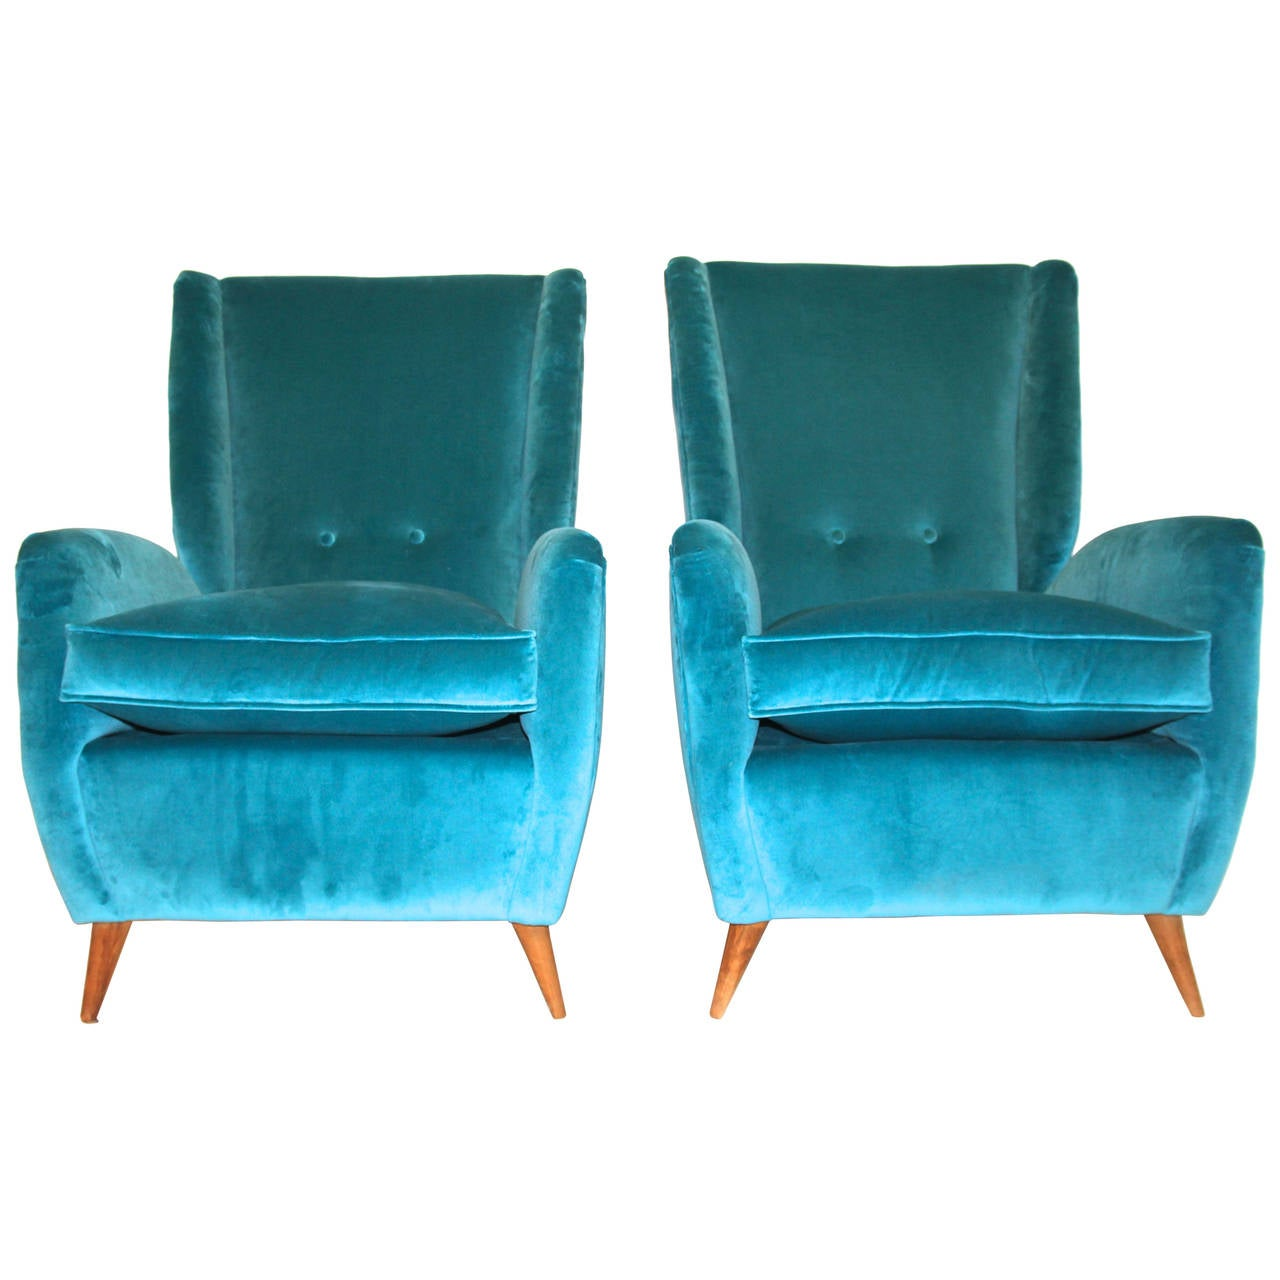 Pair of Armchairs by Gio Ponti, Textile and Wood Feet, circa 1950, Italy 1